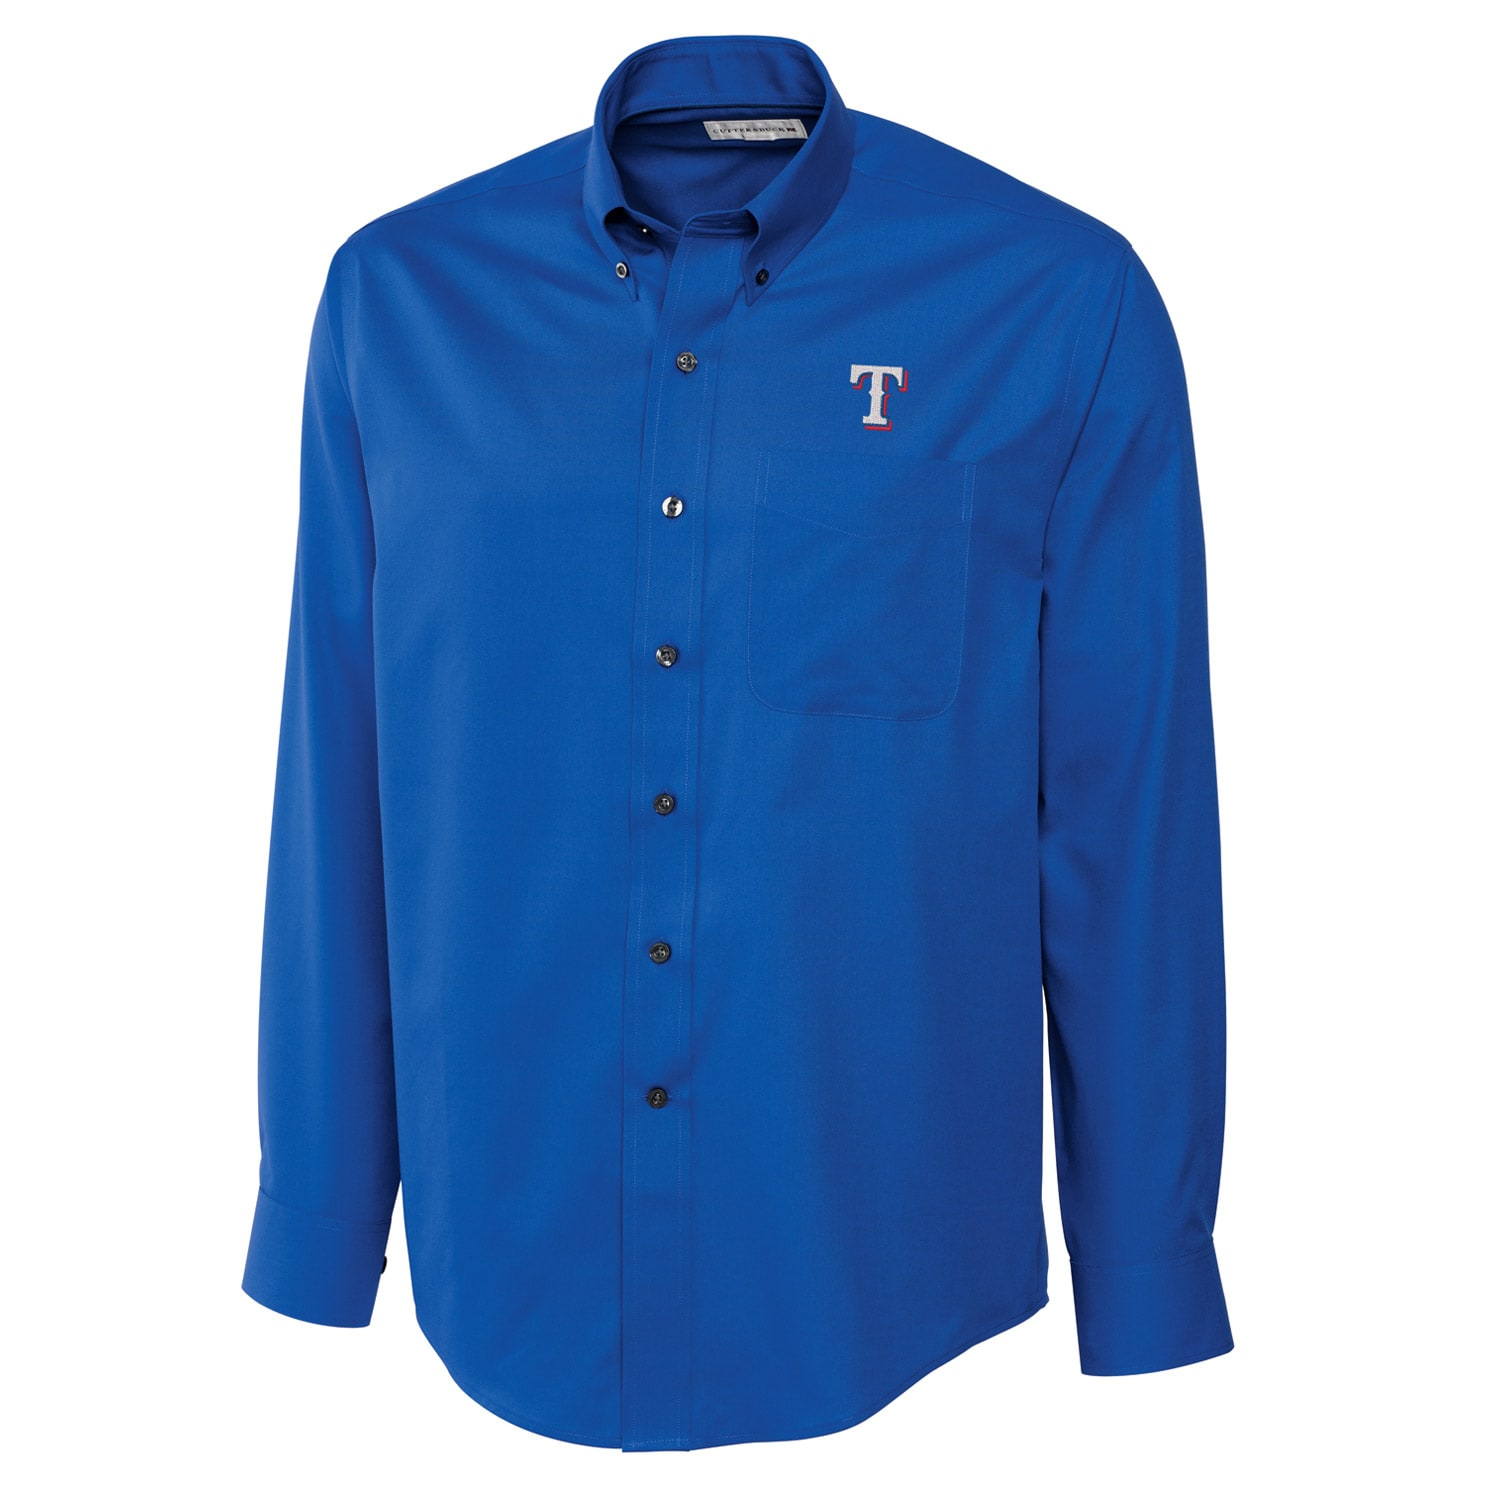 Texas Rangers Cutter & Buck Big & Tall Epic Easy Care Fine Twill Long Sleeve Shirt - Royal